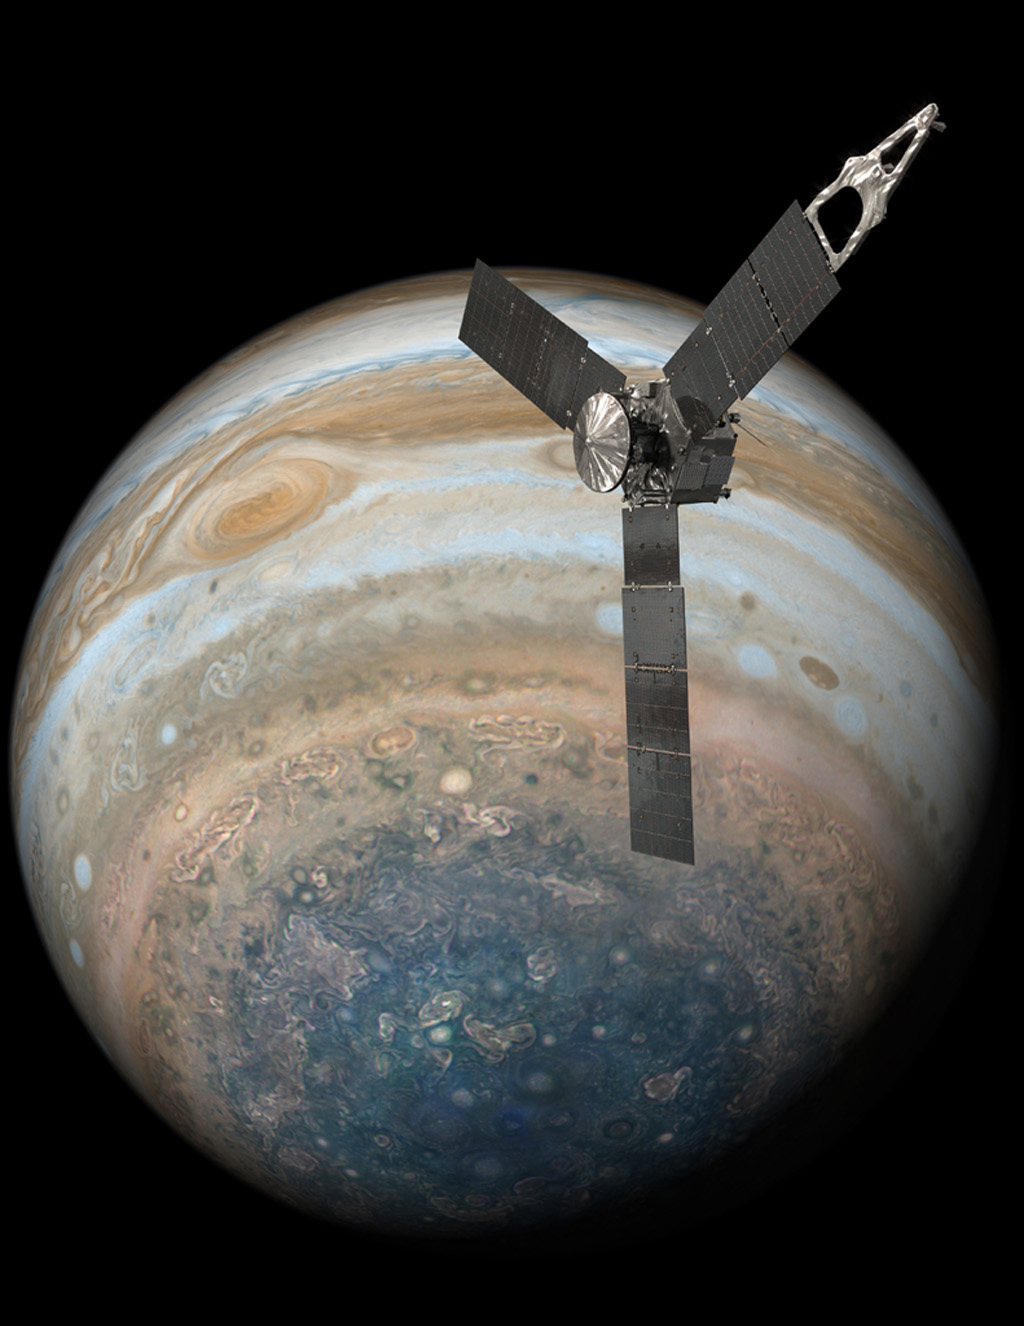 Space Images | Juno Over Jupiter's South Pole (Illustration)